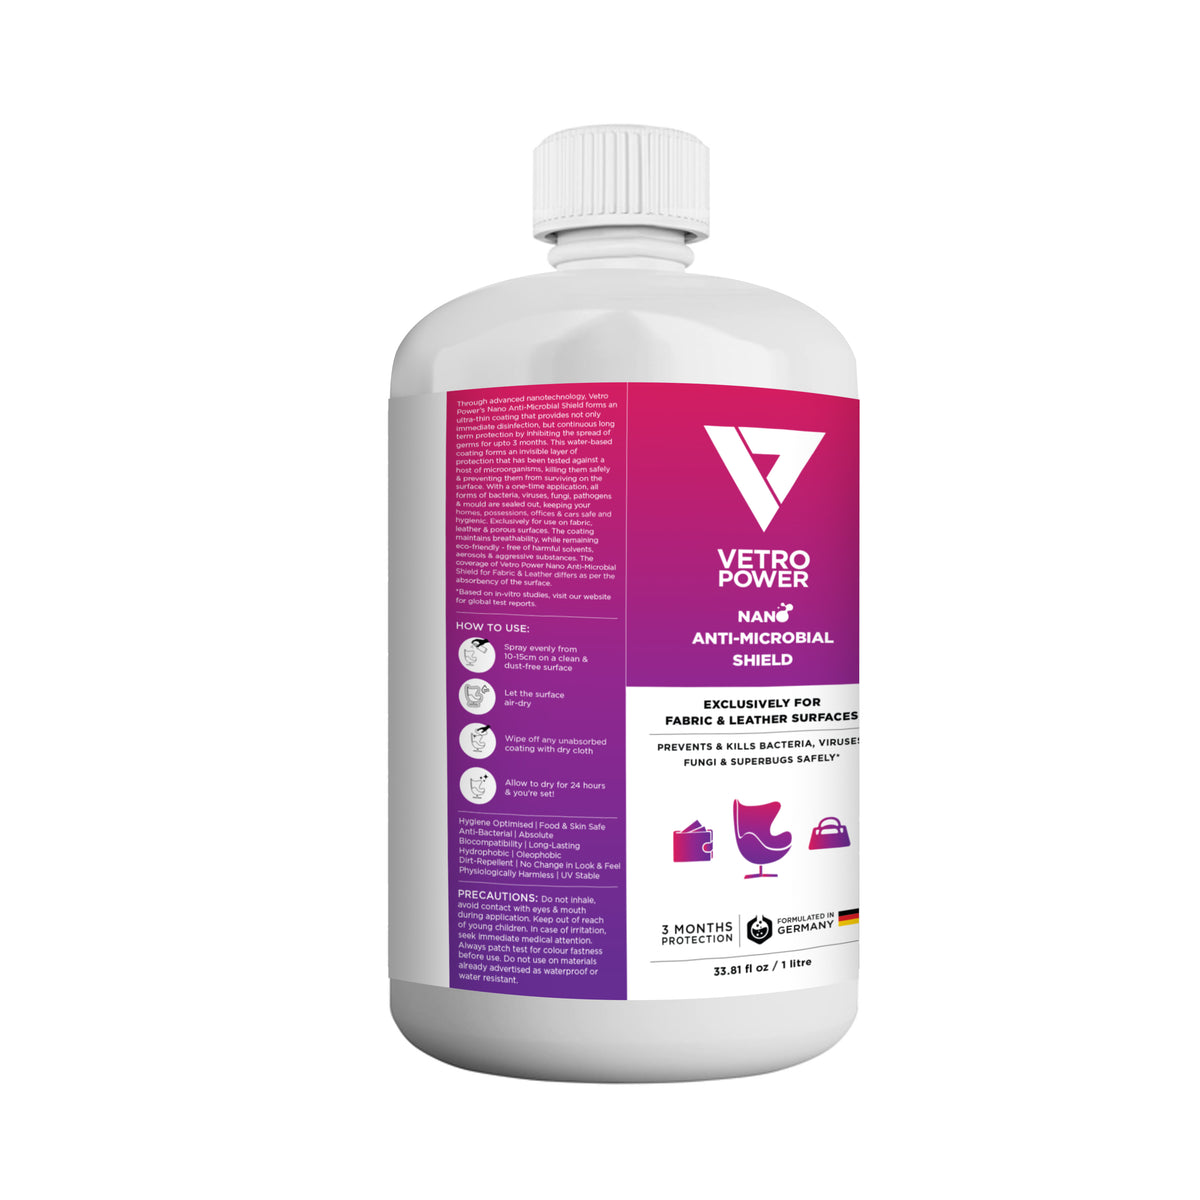 Vetro Power Nano Anti-Microbial Shield 1 Litre for Fabric & Leather Surfaces